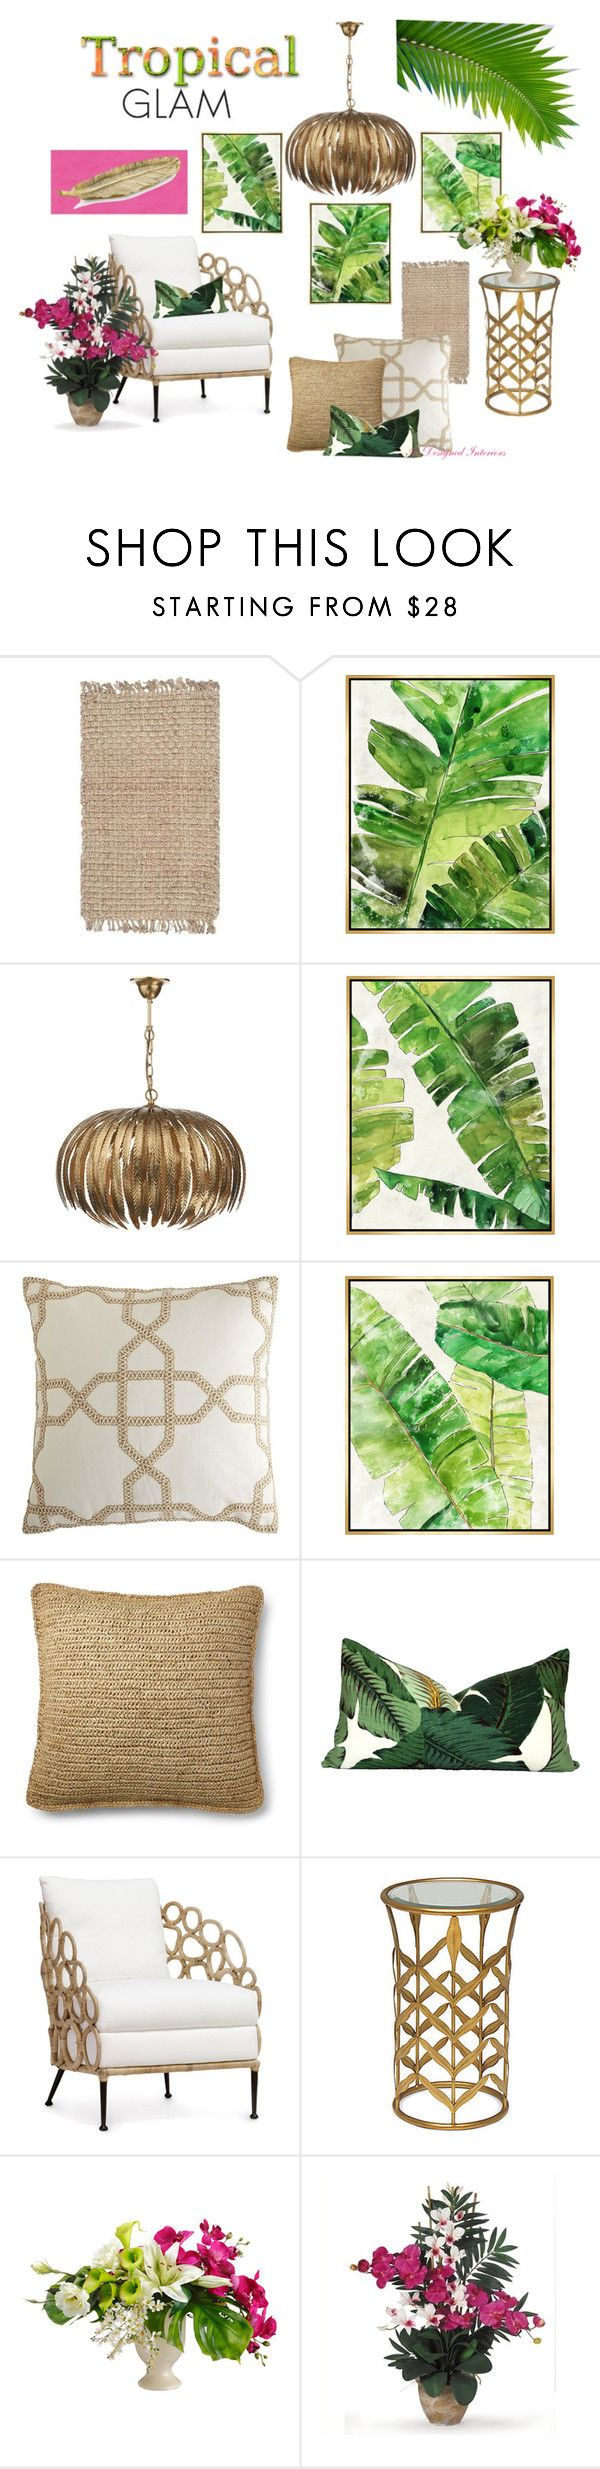 """Tropical Glam"" by angela-l-s ❤ liked on Polyvore featuring interior, interiors, interior design, home, home decor, interior decorating, Safavieh, Barclay Butera, Pier 1 Imports and Ralph Lauren"